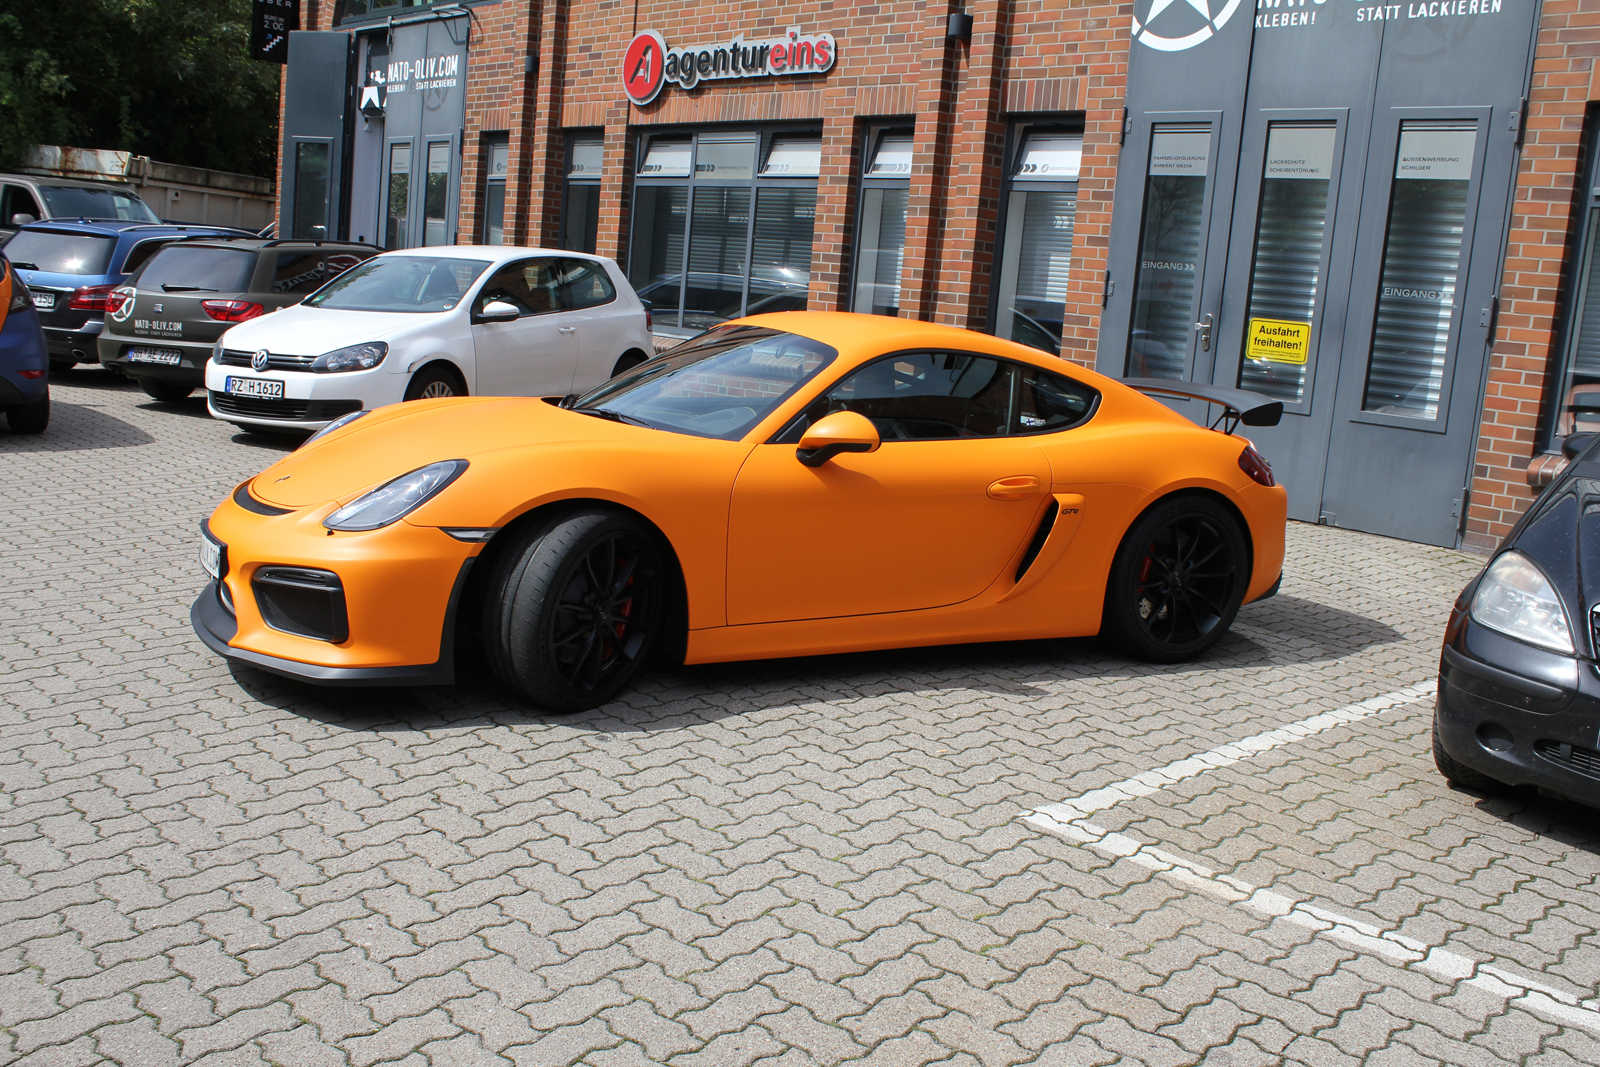 PORSCHE_CYAMAN_GT4_FOLIERUNG_ORANGE_MATT_01